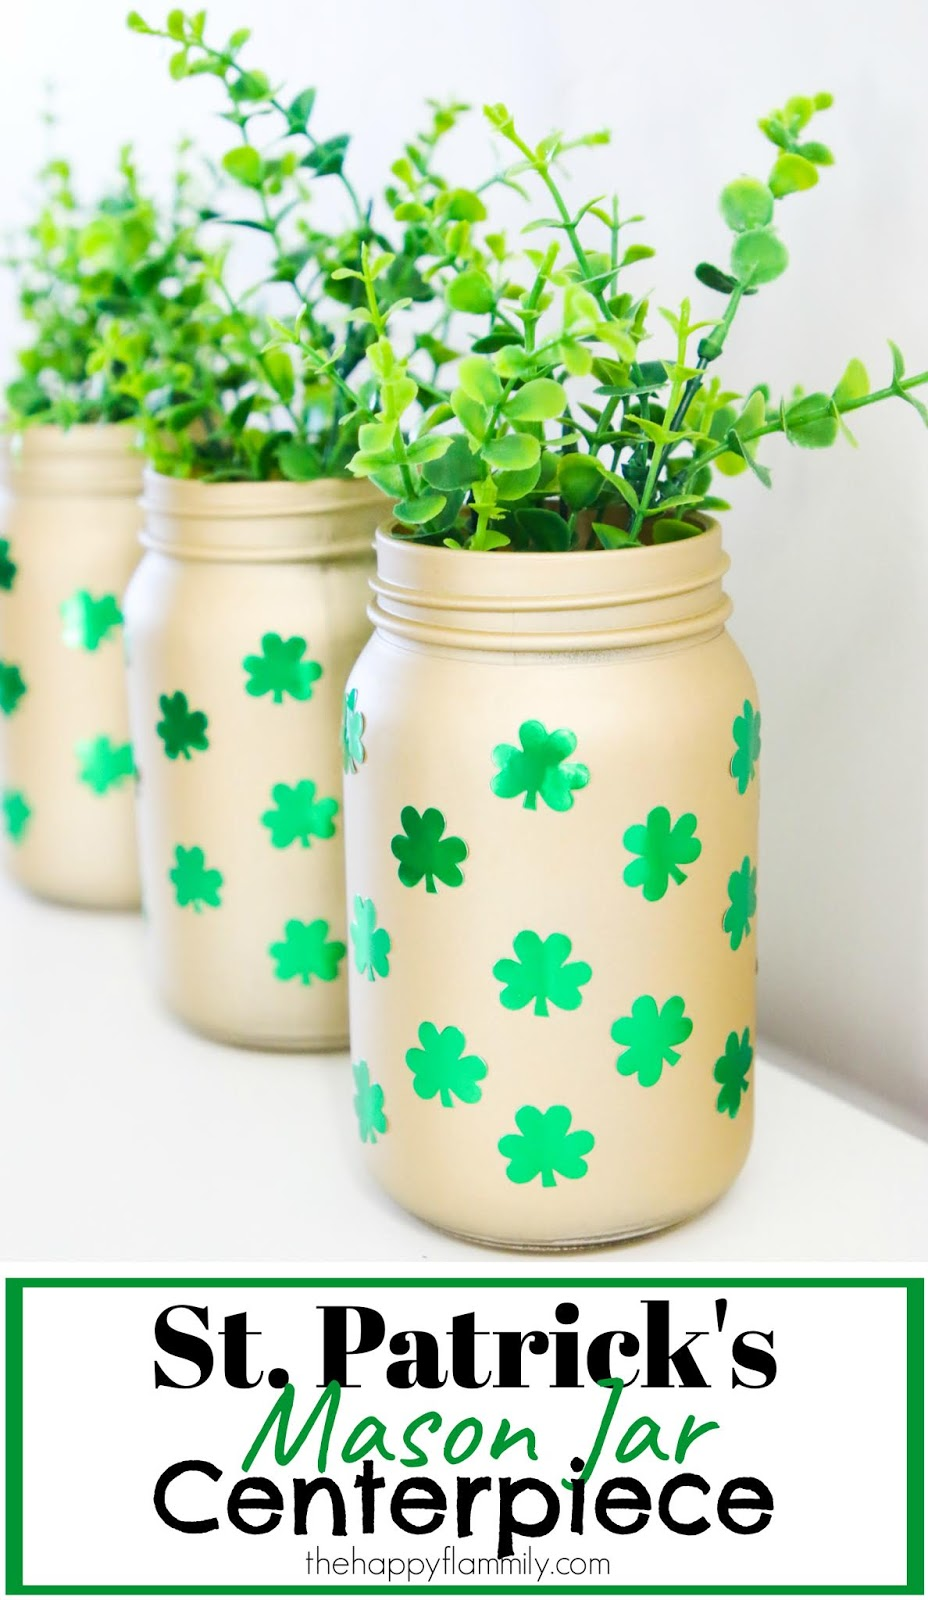 St Patrick's day decoration ideas. St Patrick's day decorations DIY. St Patrick's craft projects. St Patrick's day outdoor decorations. St Patrick's day decorations dollar tree. Hobby Lobby St Patrick's decorations. St Patrick's day decorations amazon. St Patrick's dar crafts for adults. #stpatricks #stpatricksday #crafts #diy #masonjar #centerpiece #gold #spraypaint #green #shamrocks #jars #stickers #spring #march #stpatricksDIY